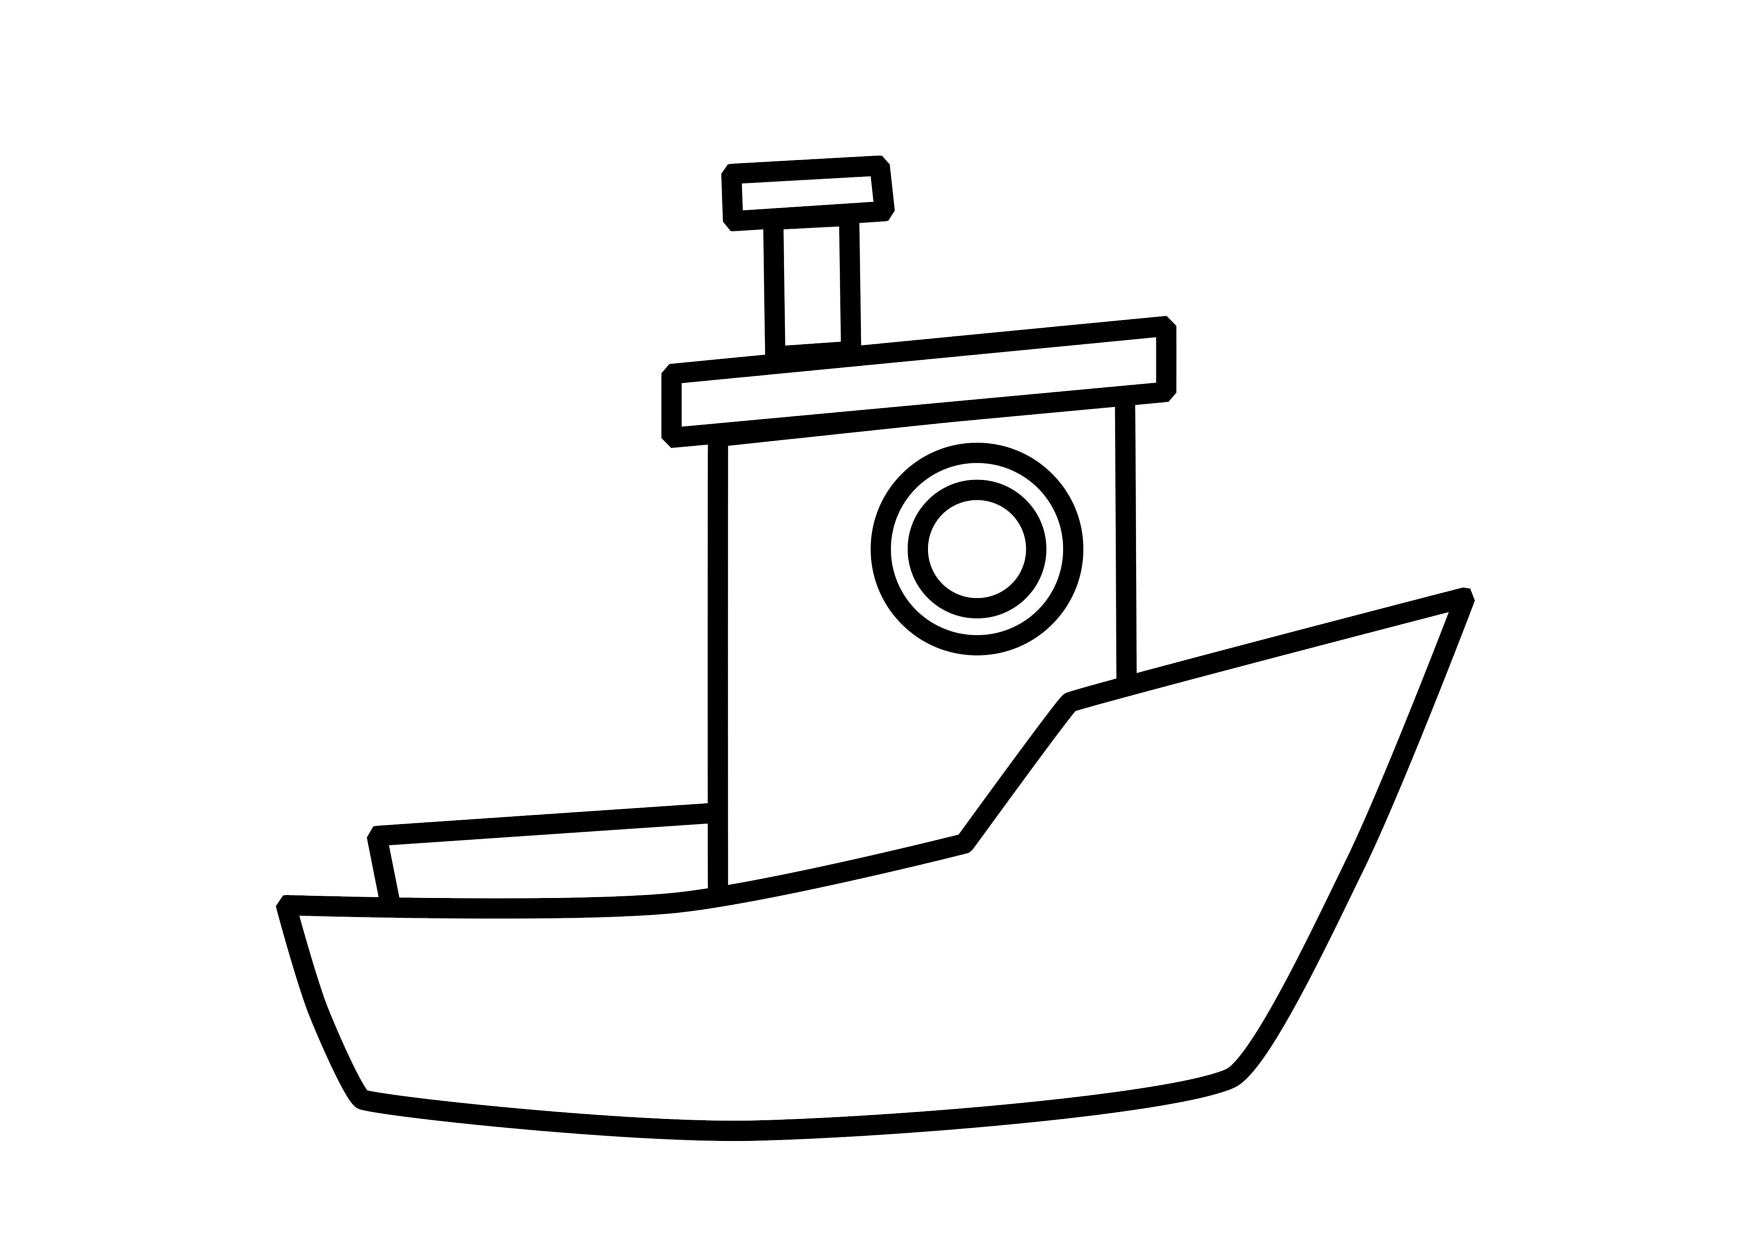 Download Collection Of 11 Boat Coloring Pages For Kids Home Worksheets For Preschool Boys And Girls Coloring Pages Template Printable Preschool Coloring Pages [ 1240 x 1754 Pixel ]